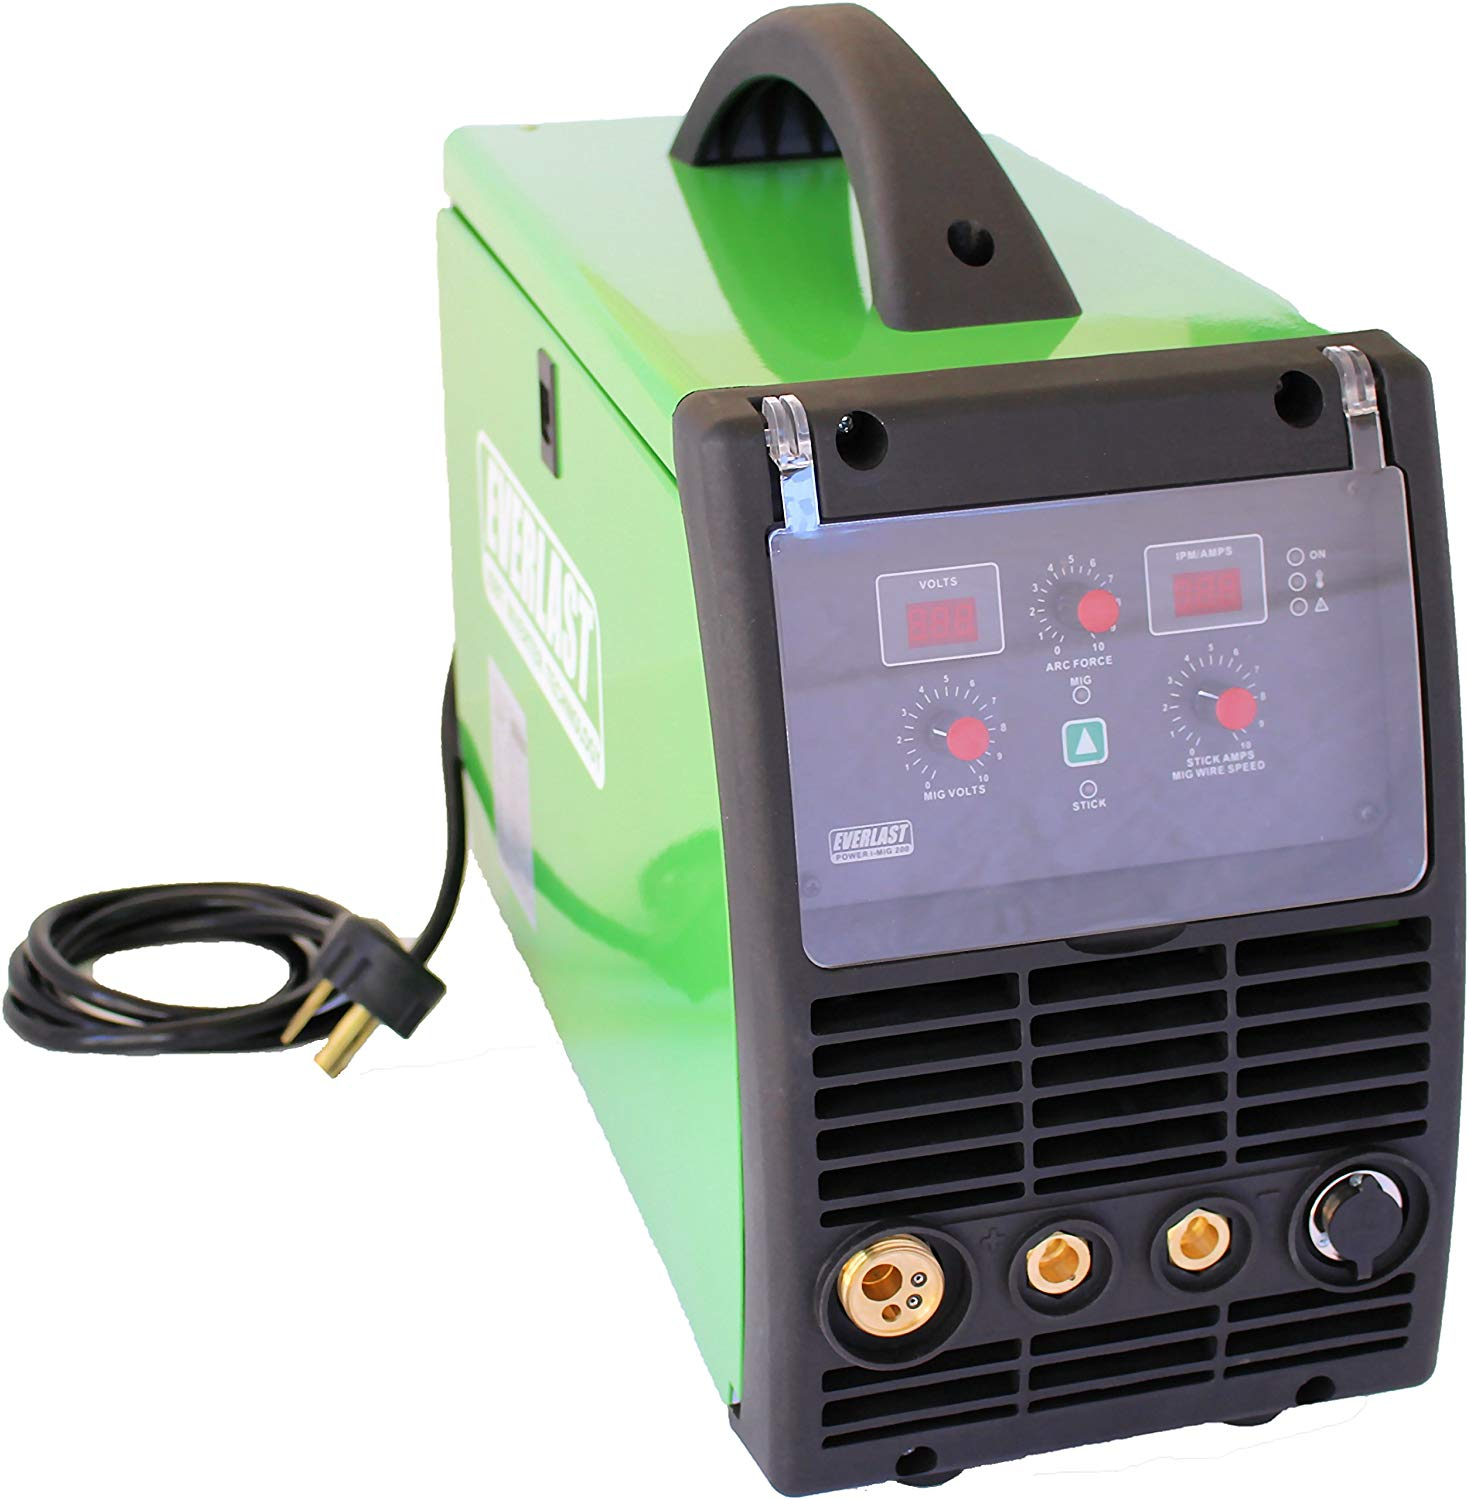 Everlast Power MIG 200 200amp MIG stick welder Review